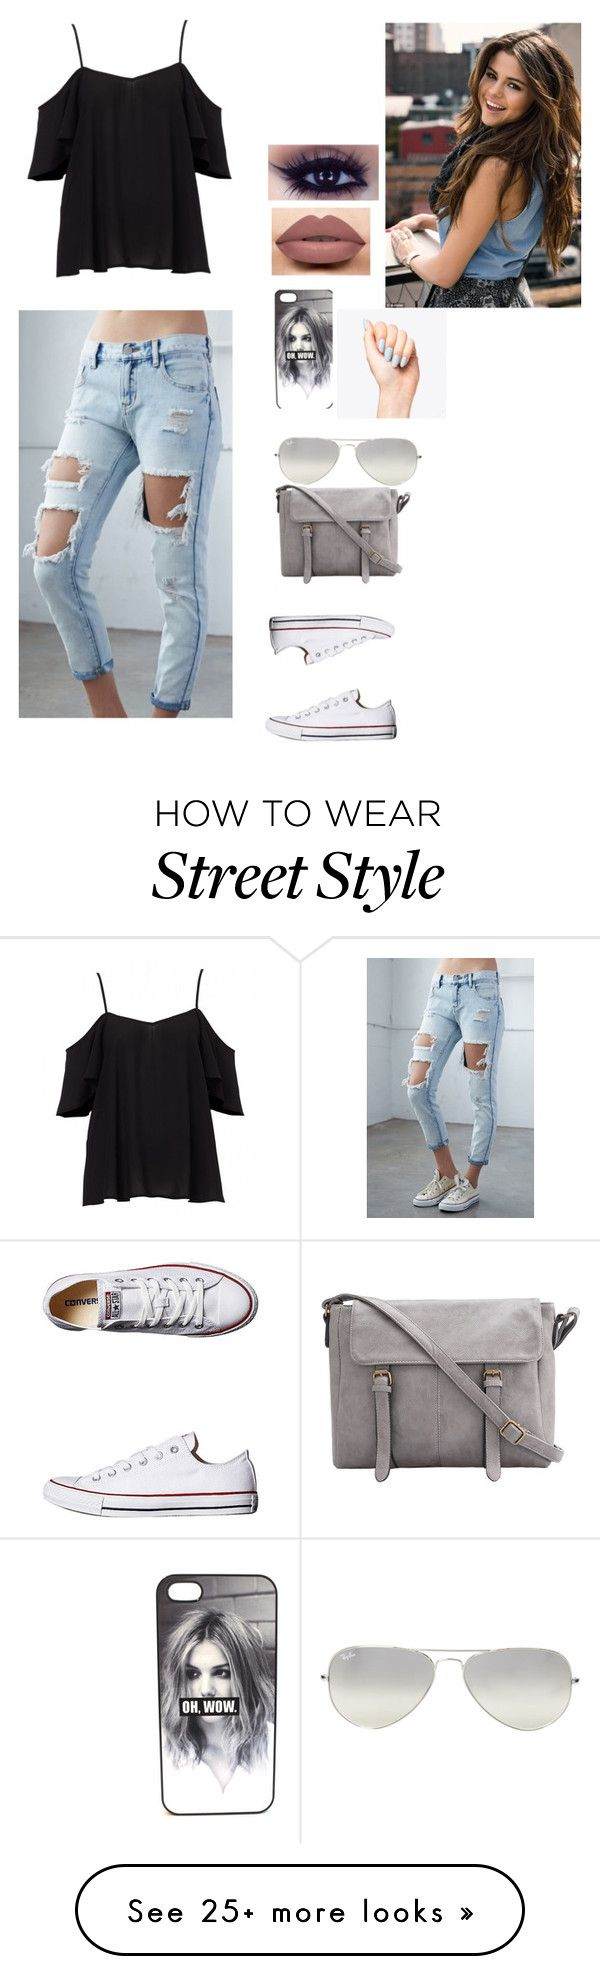 """Street style"" by dontstopdreamim on Polyvore featuring Bullhead Denim Co., Converse, Ray-Ban and adidas NEO"